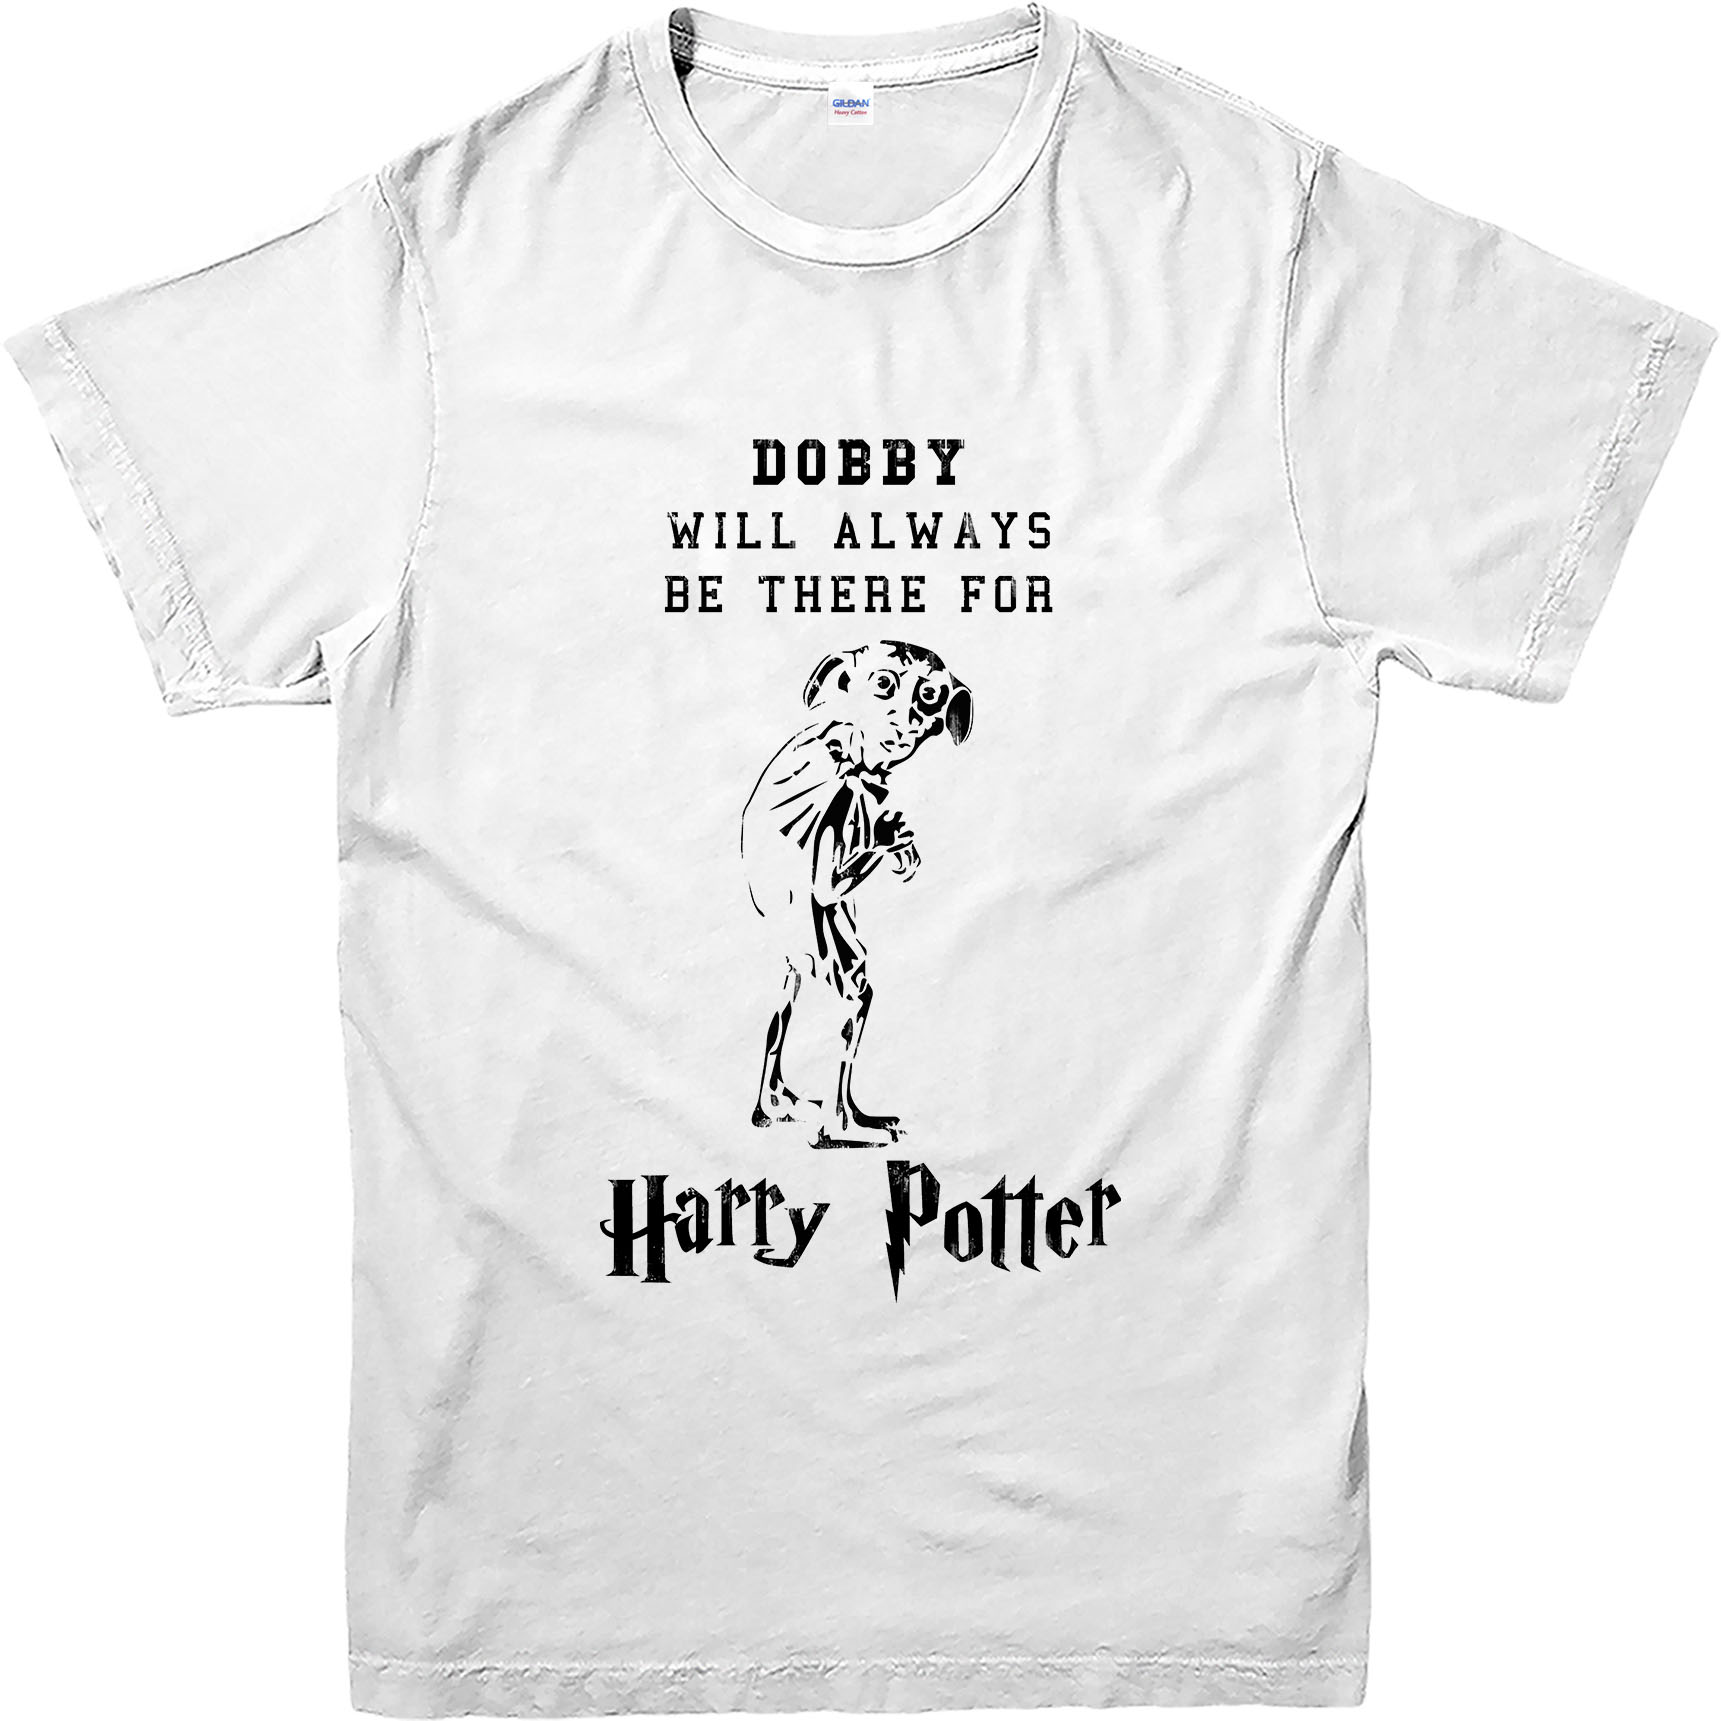 harry potter t shirt dobby famous quote t shirt inspired design top ebay. Black Bedroom Furniture Sets. Home Design Ideas